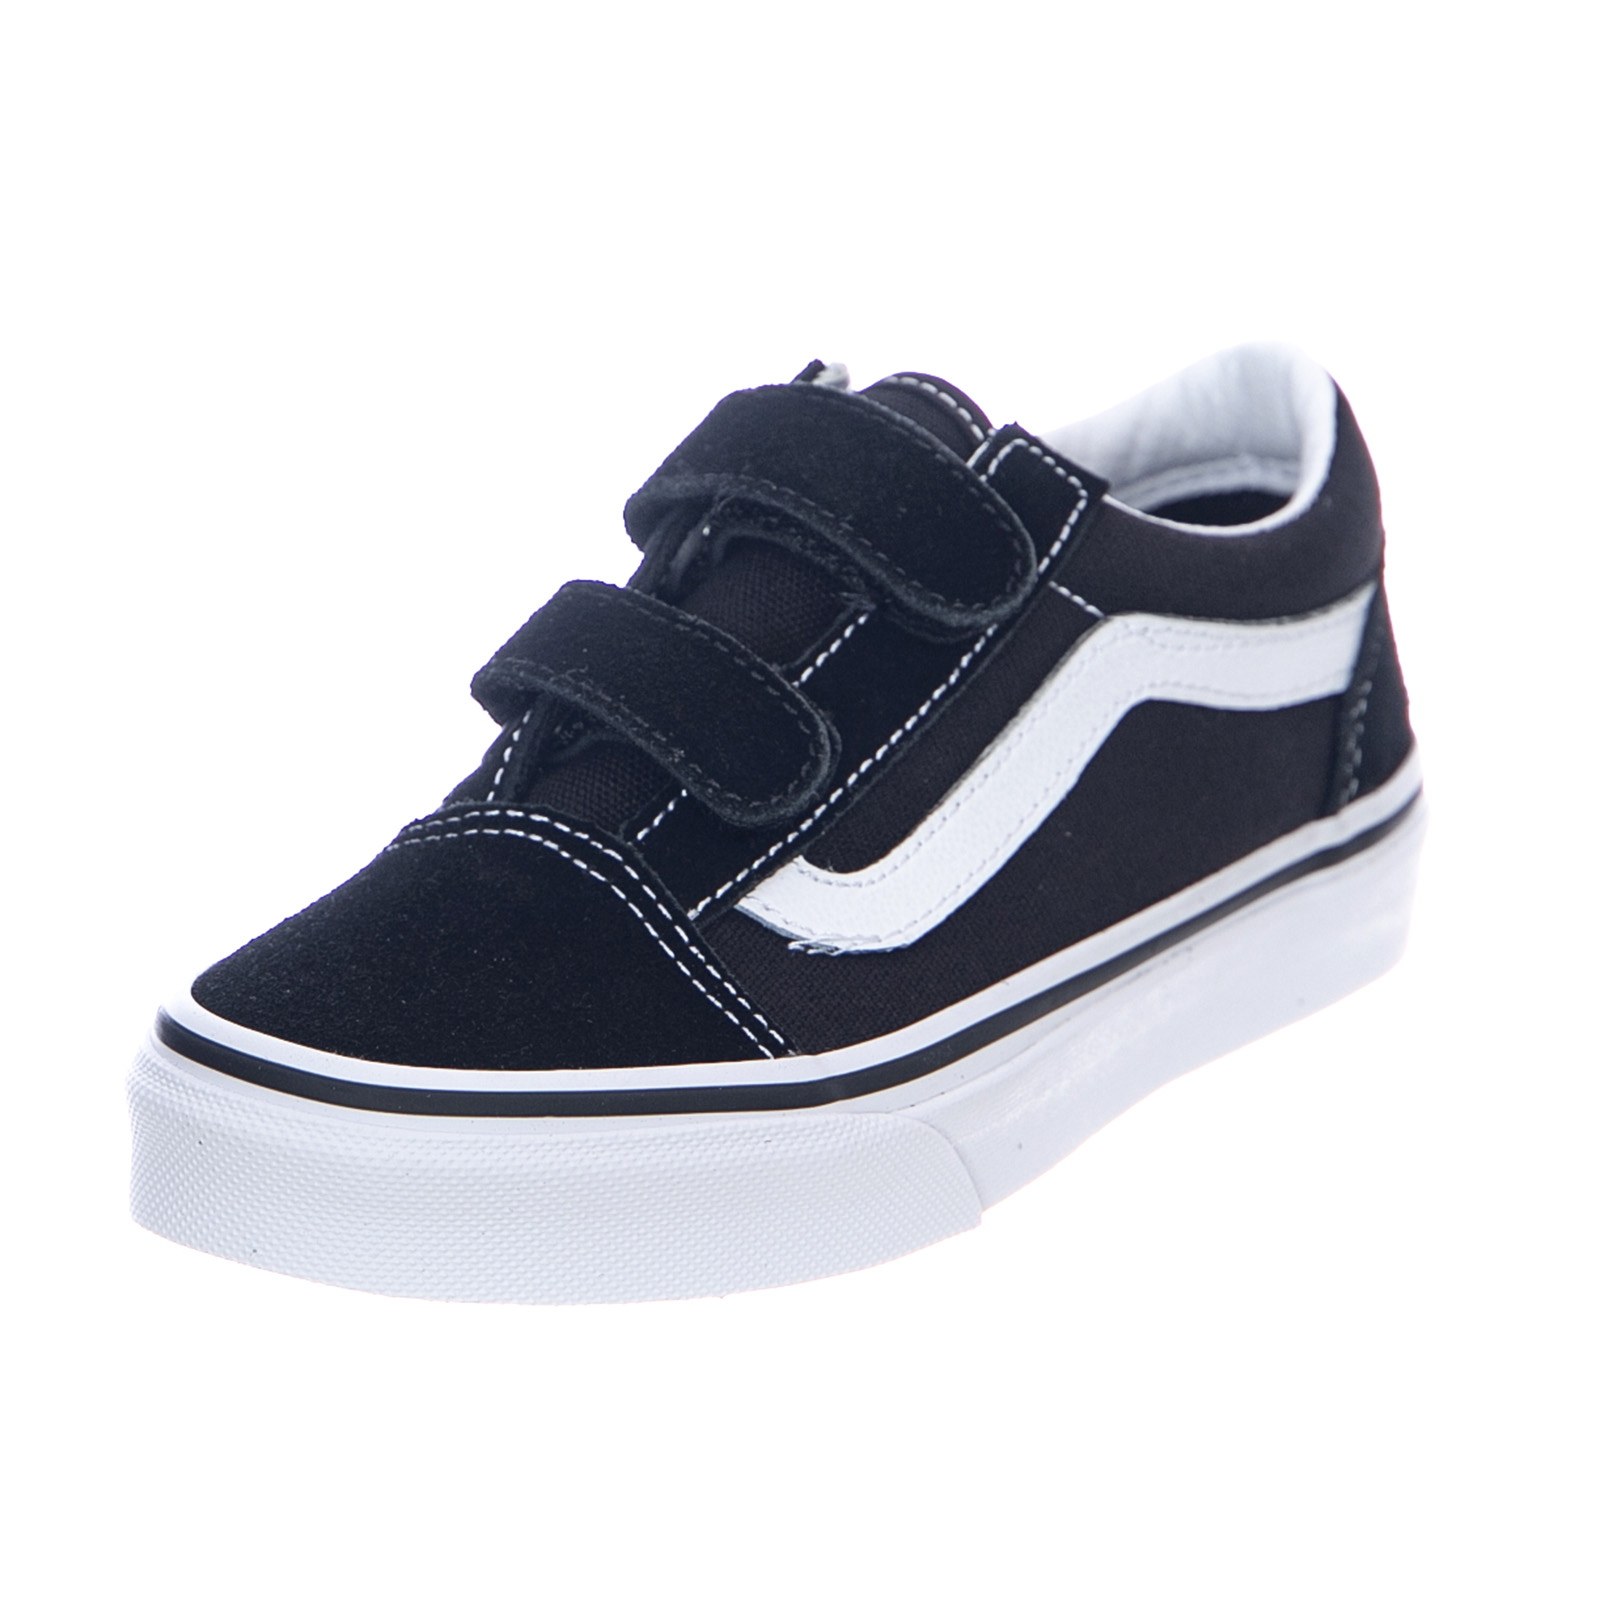 36d8f90a Details about Vans Uy Old Skool - Black/True White - Sneakers Low Boys Black